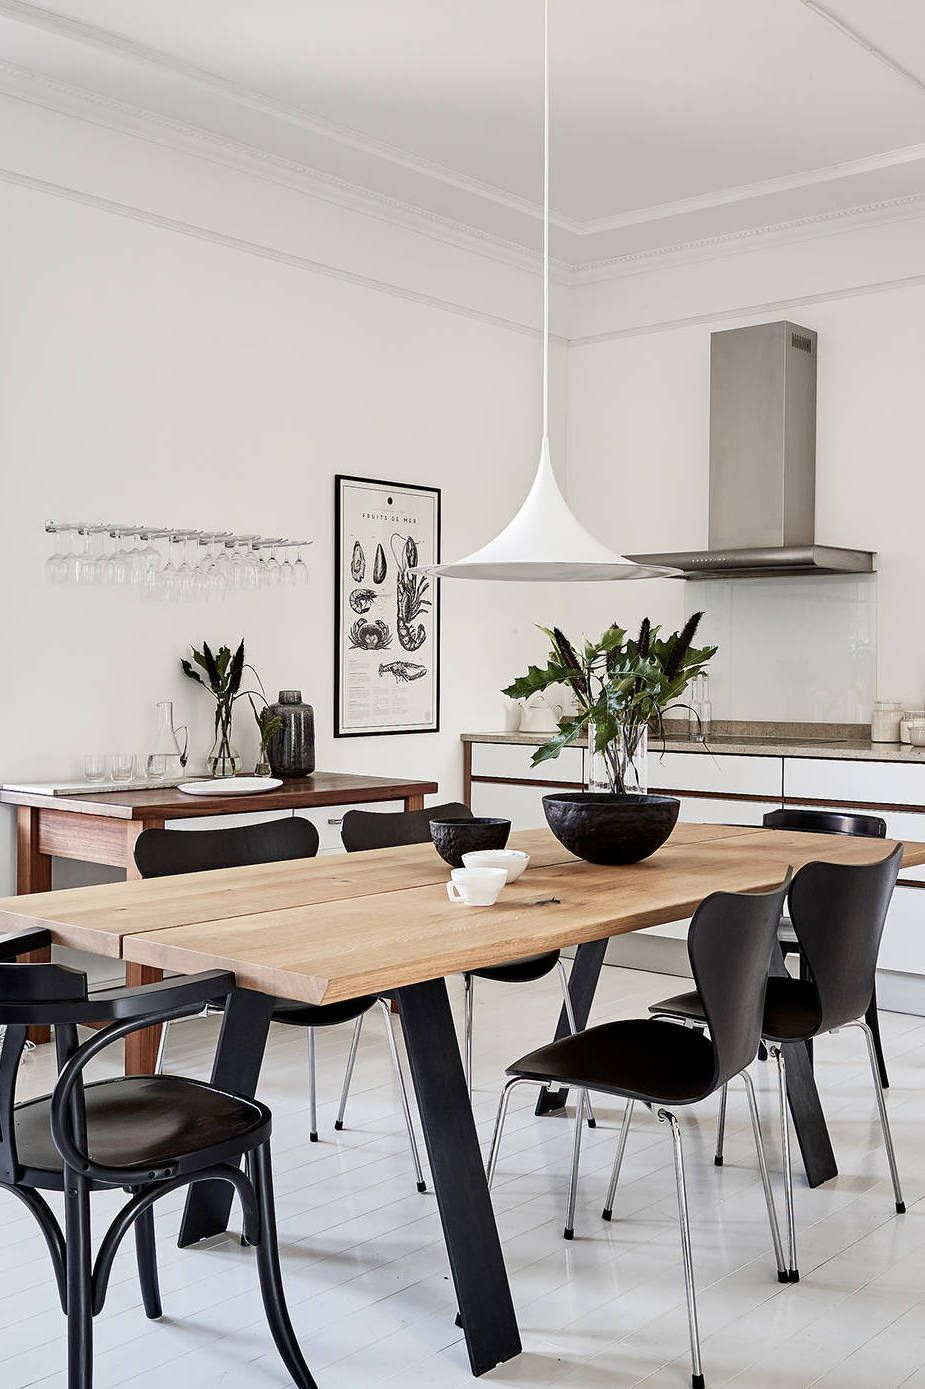 Neutral and monochrome via coco lapine design